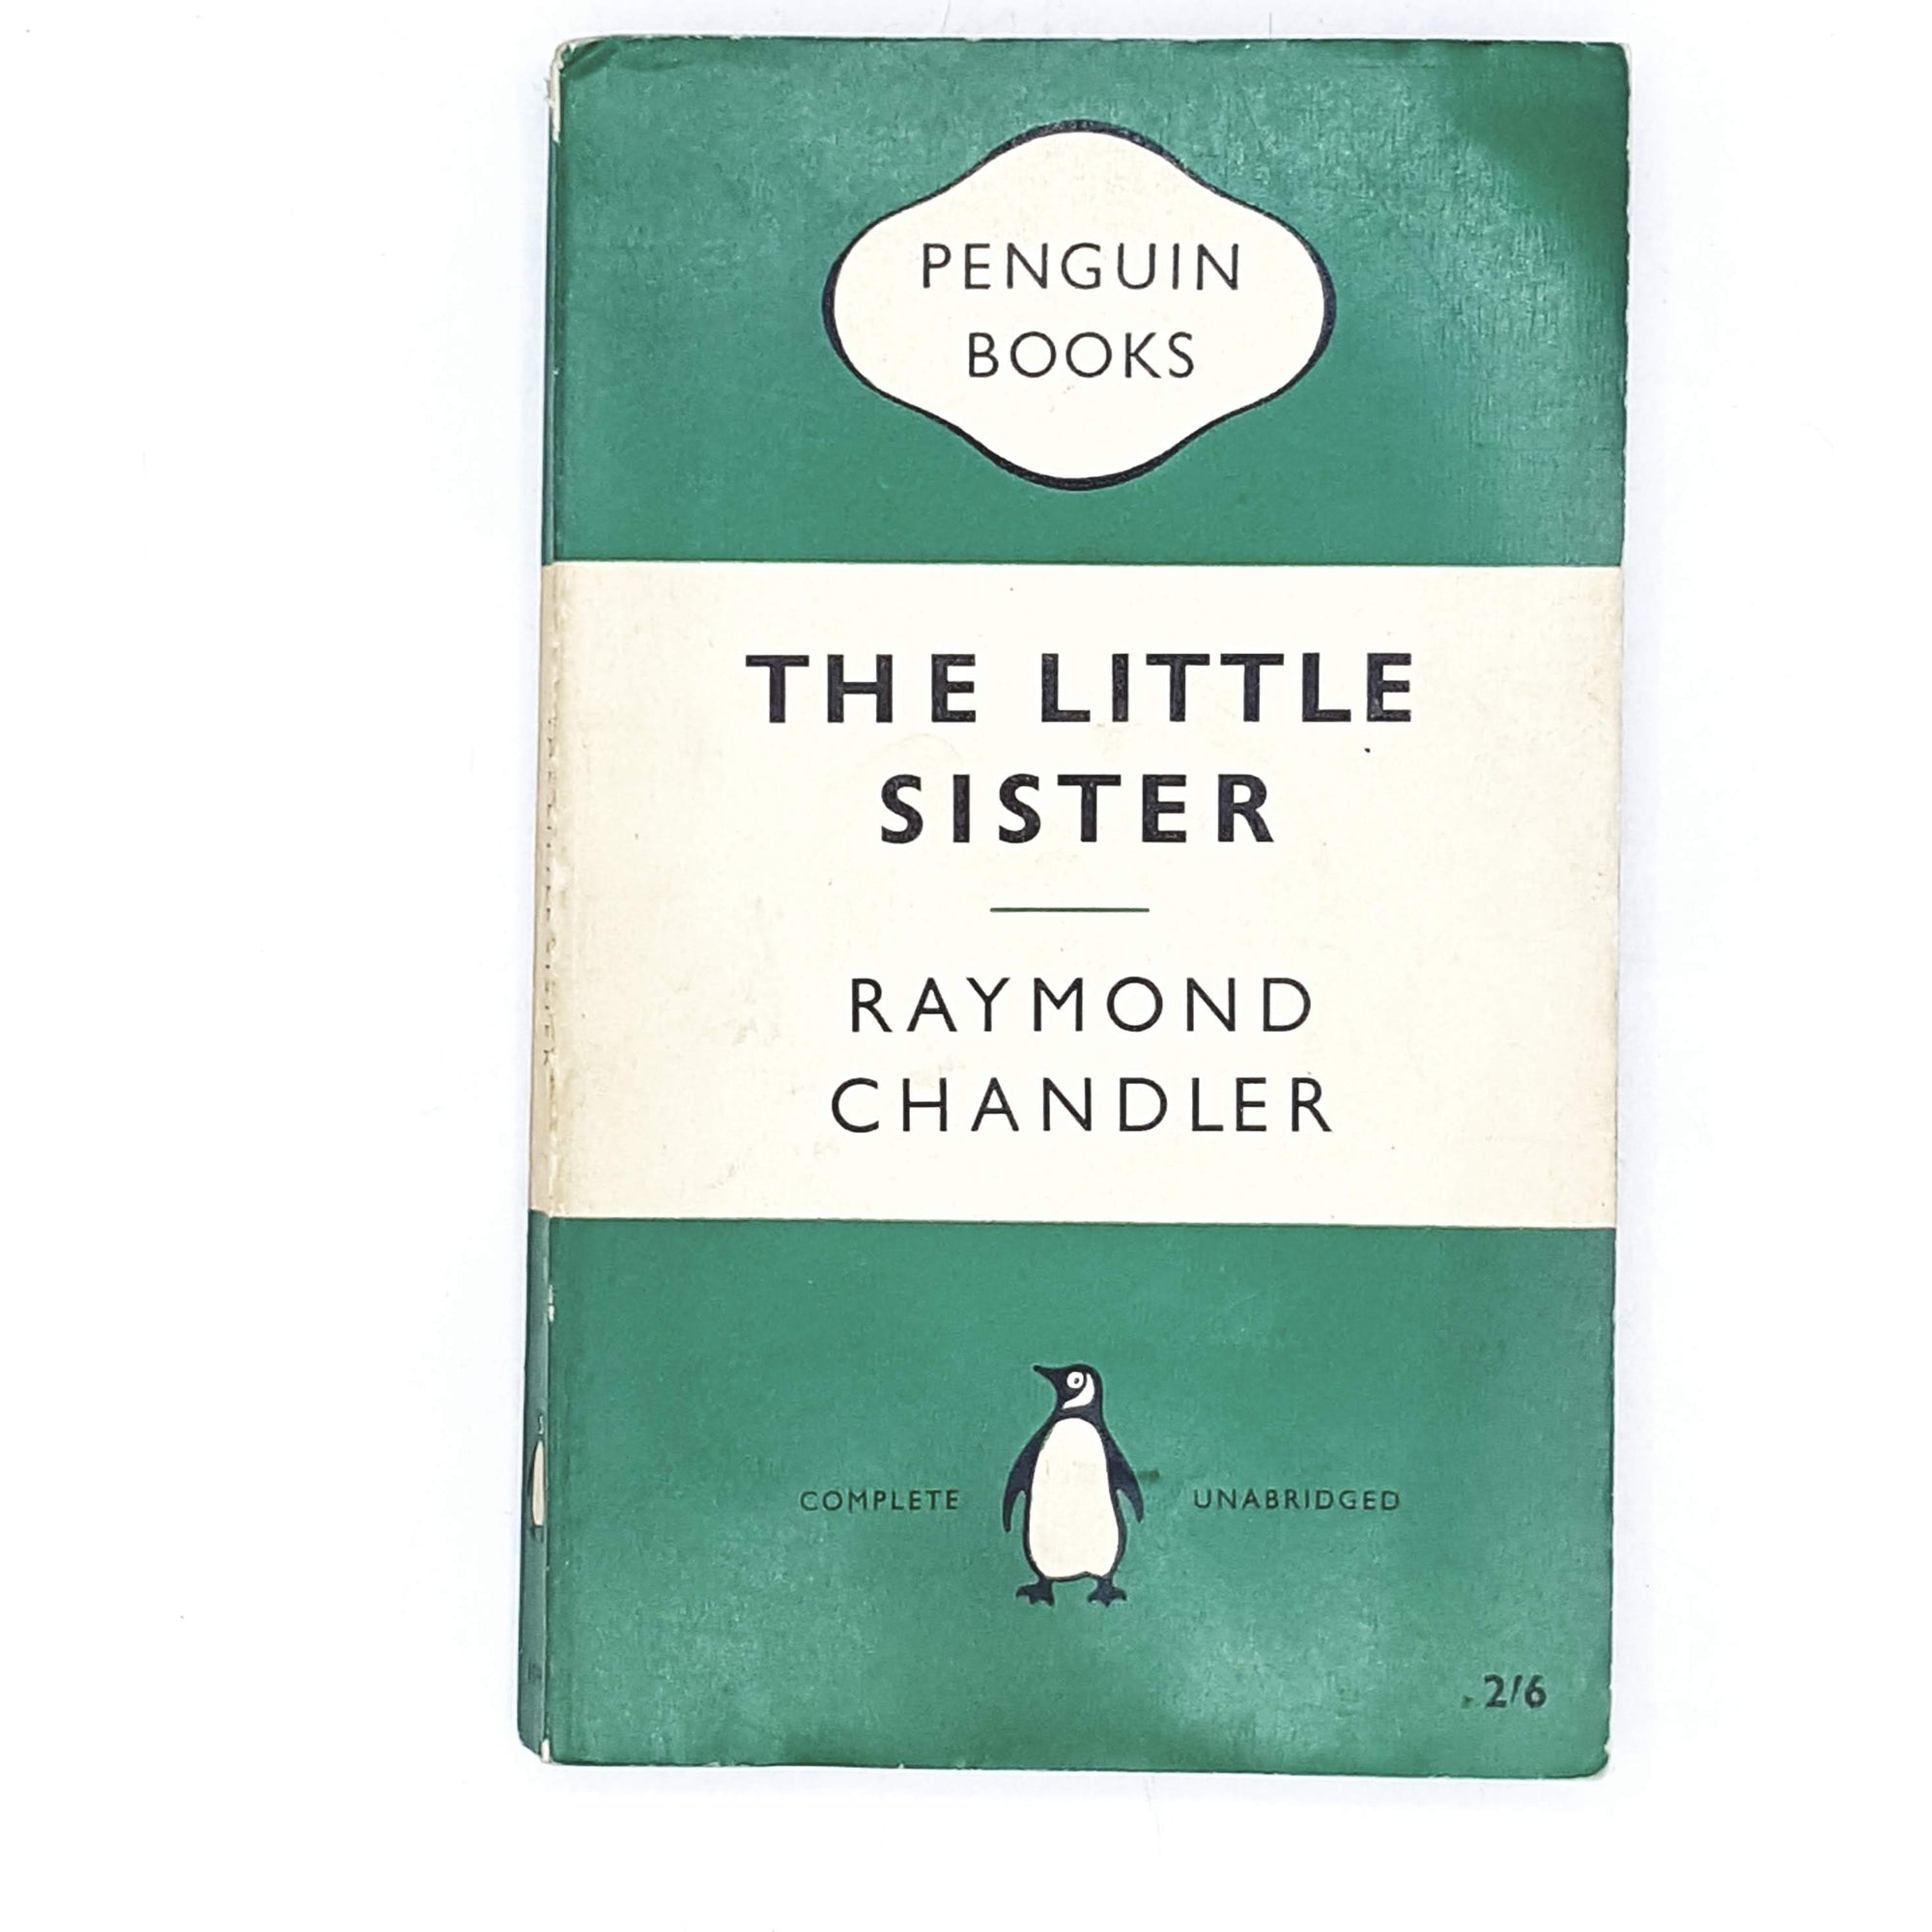 vintage-penguin-green-crime-the-little-sister-by-raymond-chandler-1959-country-house-library